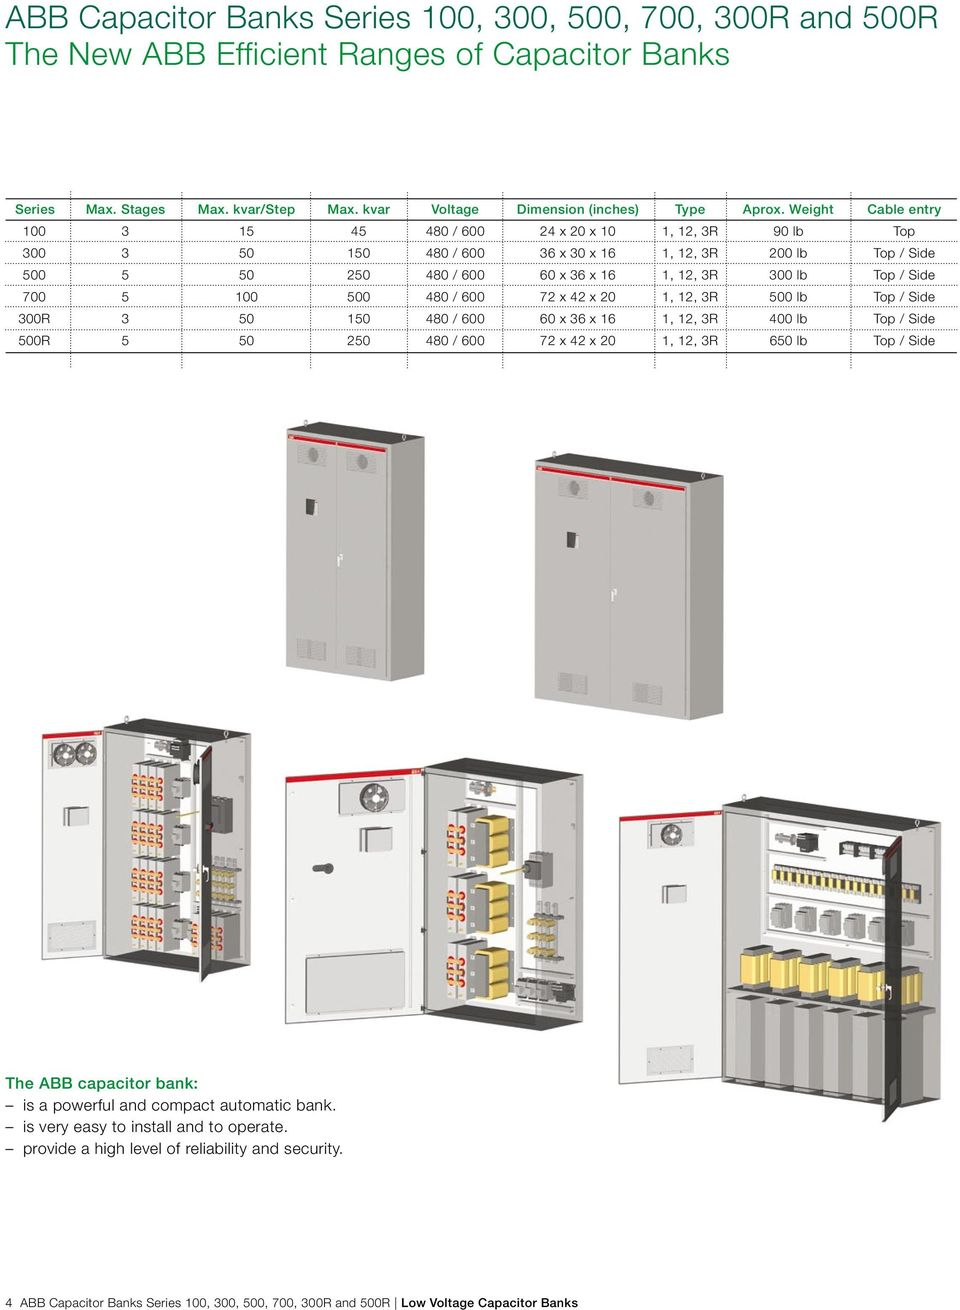 Low Voltage Products Capacitor Banks Power Factor Abb Motor Wiring Diagram Side 700 5 100 500 480 600 72 X 42 20 1 12